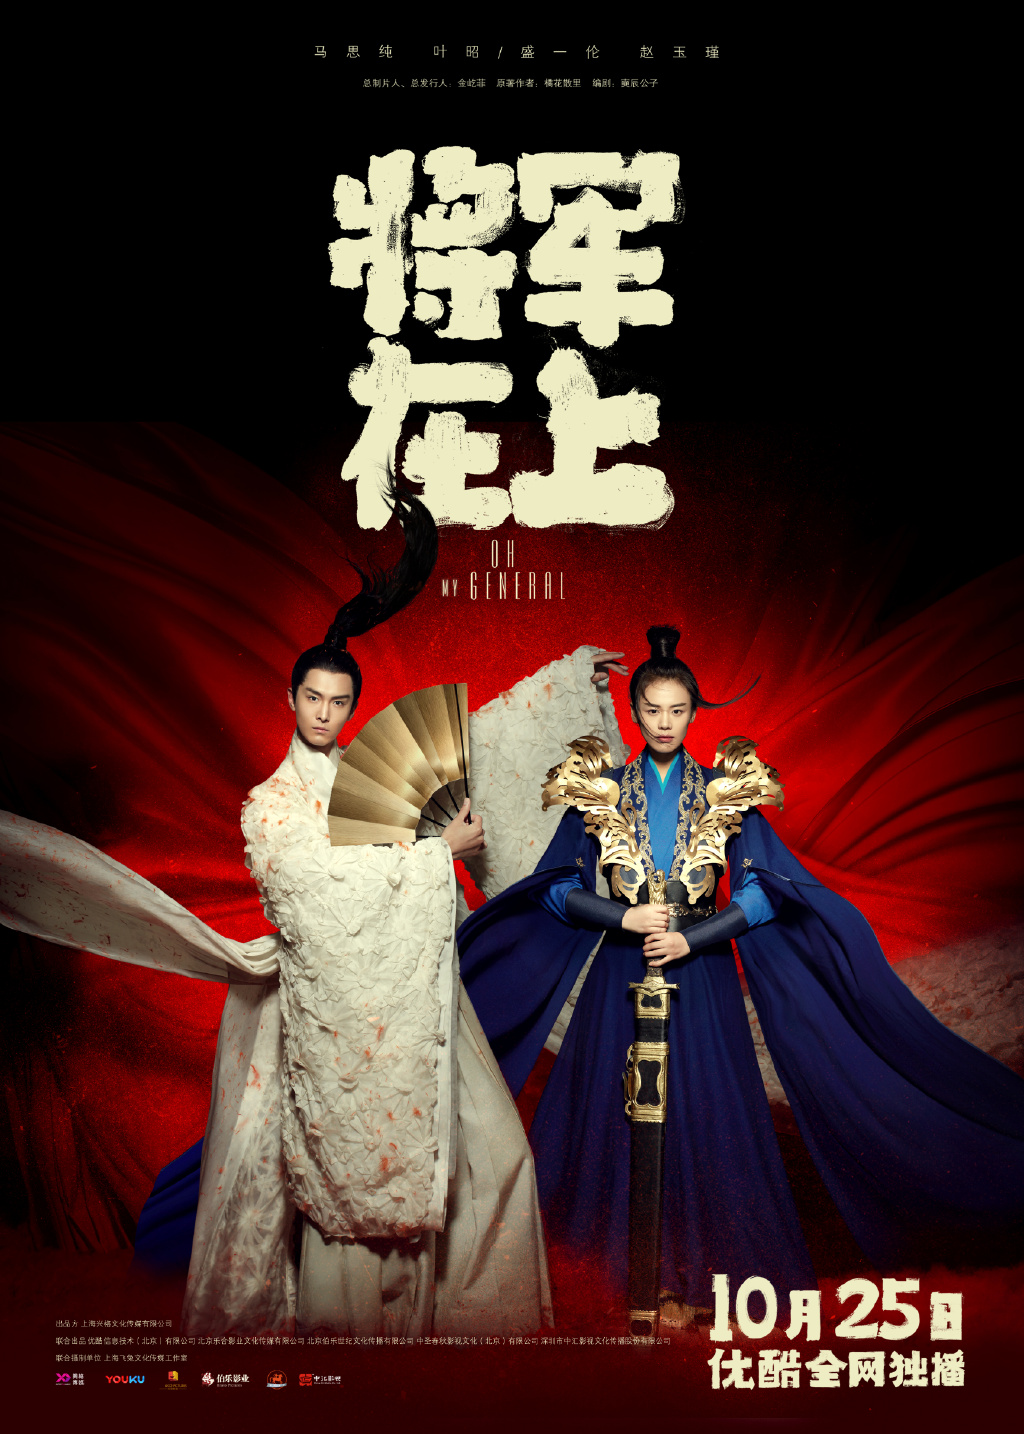 Oh My General Youku webseries Peter Sheng Sandra Ma